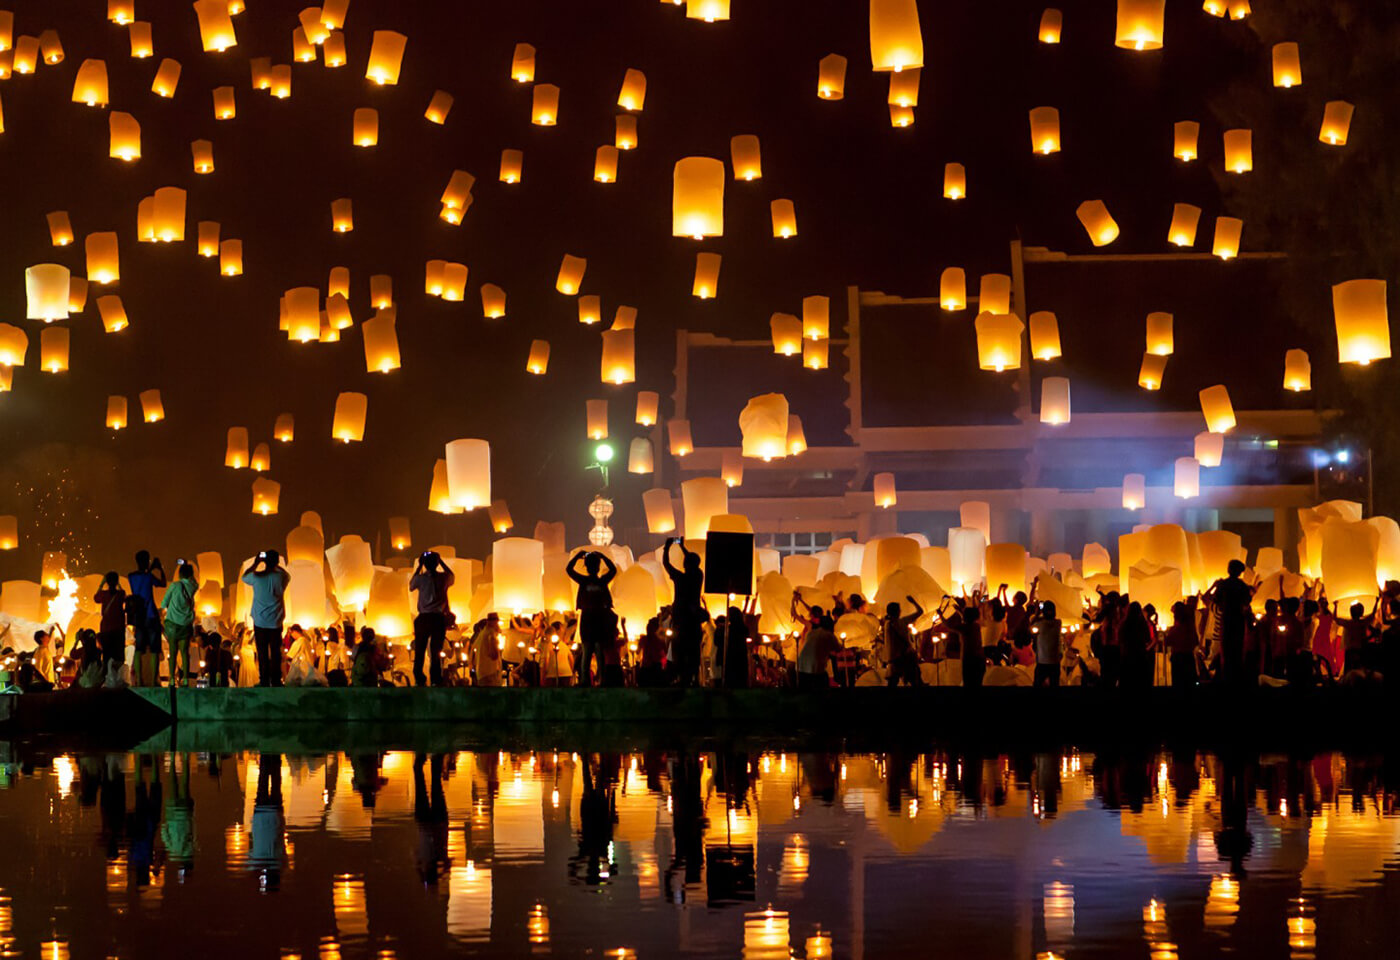 Image of lanterns being let into the night